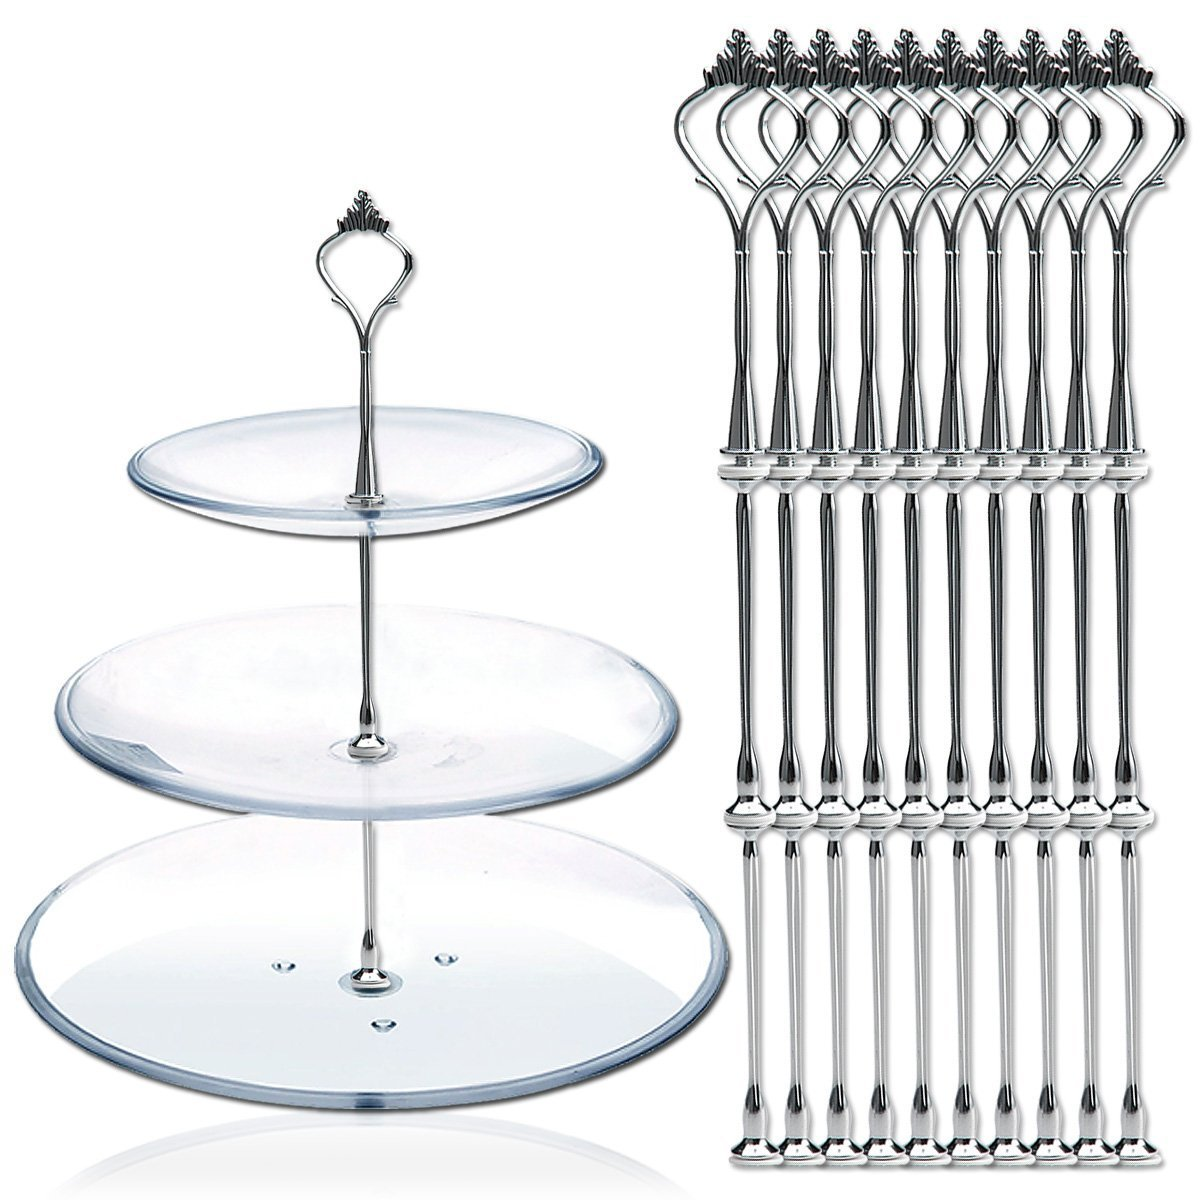 10 x Sets 2 or 3 Tier Cake Plate Stand Fittings Silver Plate Stands by DGQ (1) Leateck cake standsX10